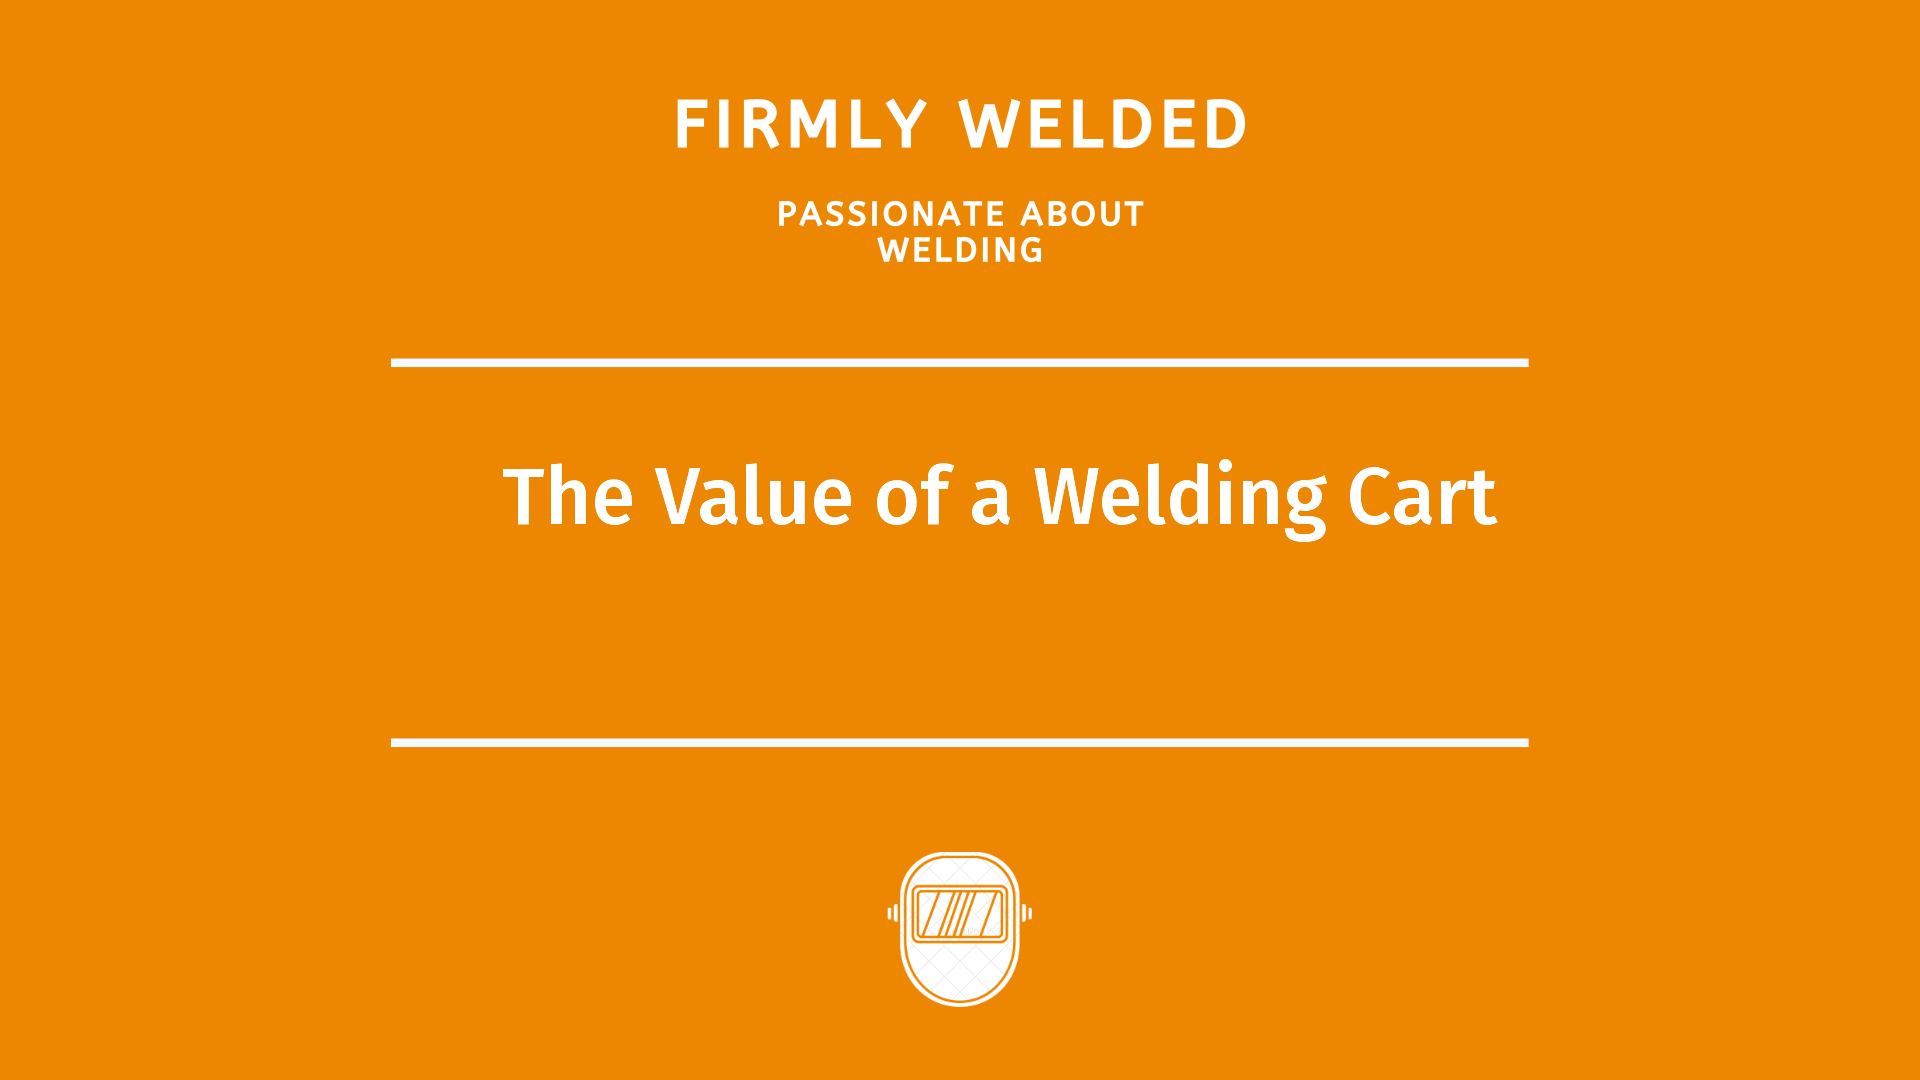 The Value of a Welding Cart